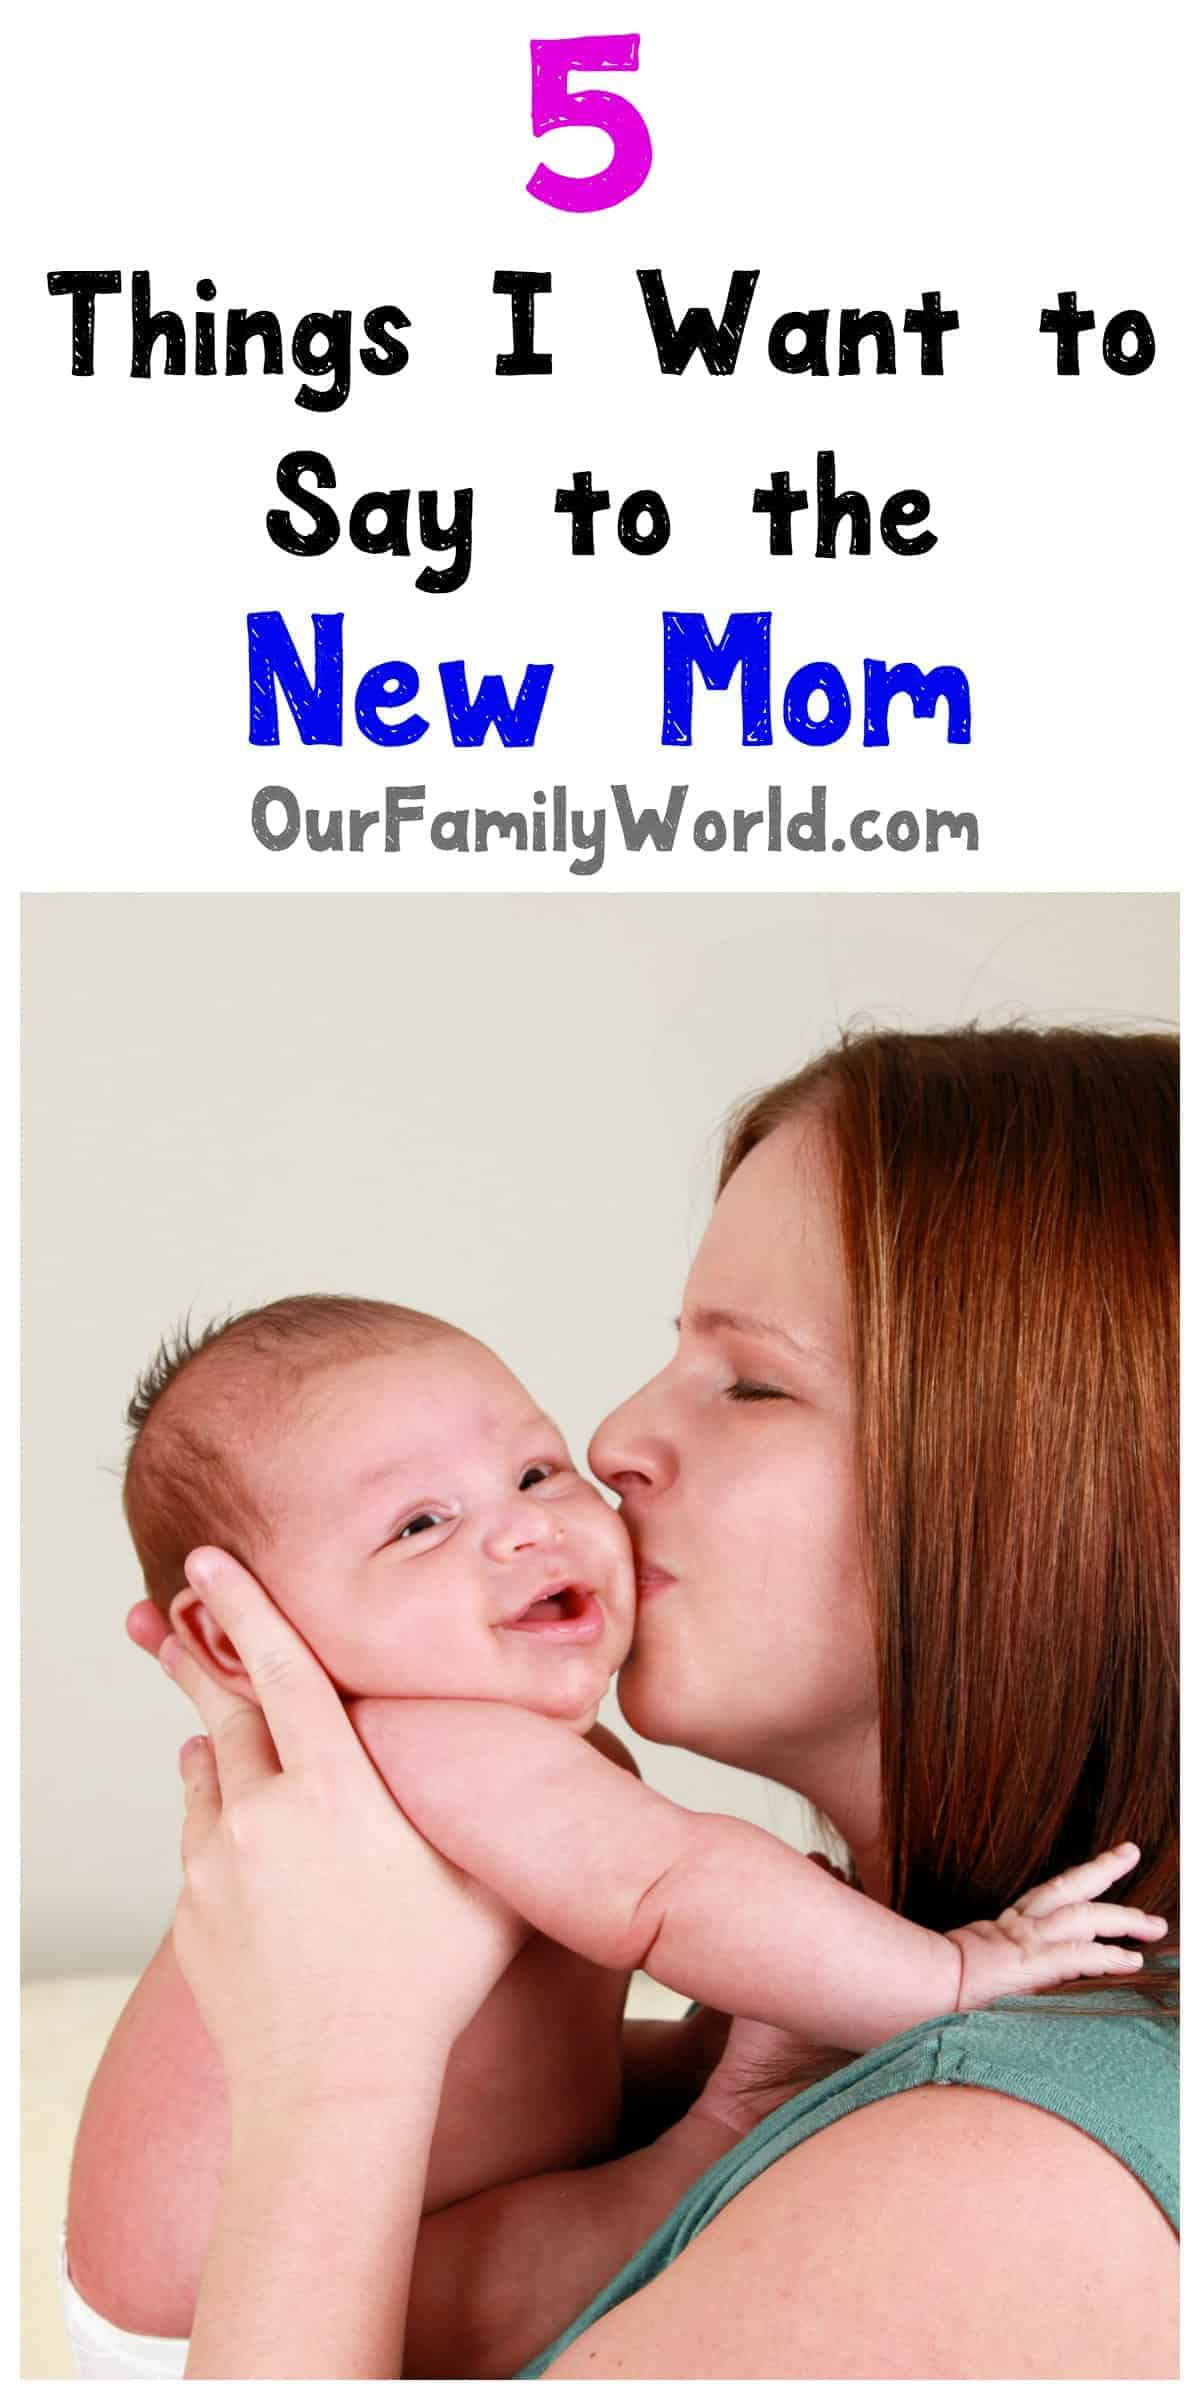 """When it comes to giving parenting advice, the best thing you can say is """"I understand."""" Check out 5 things to say to a new mom!"""